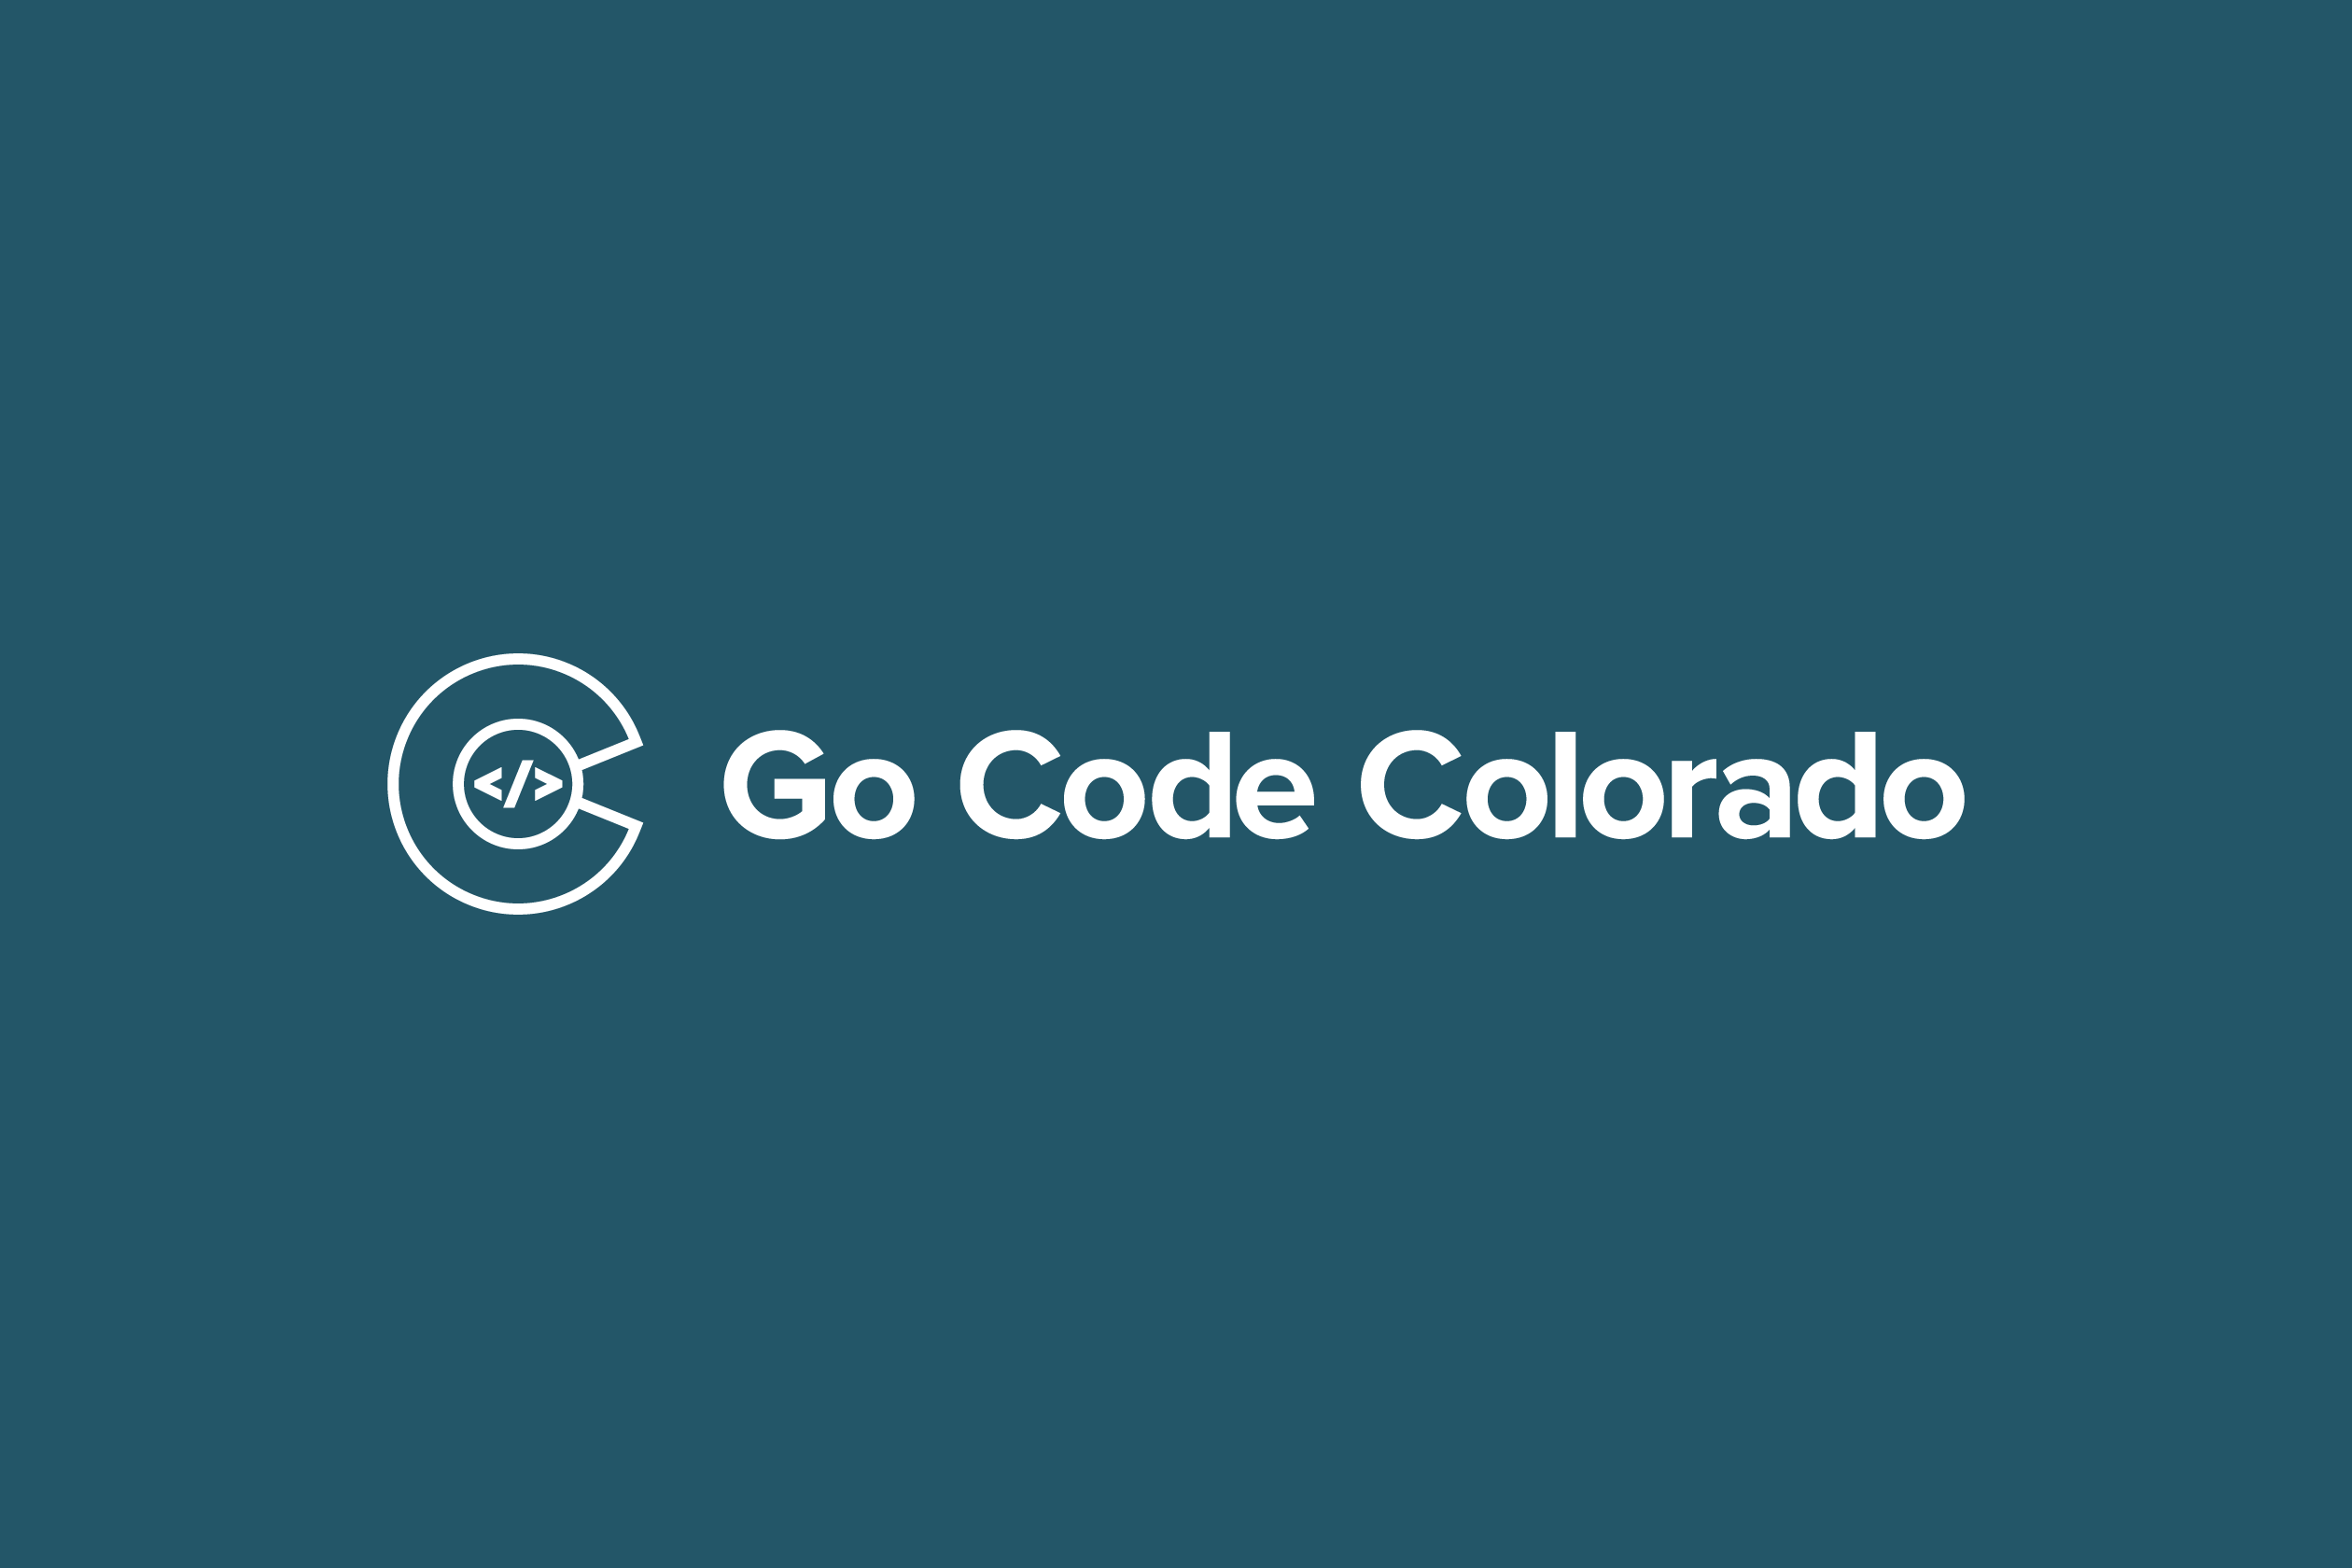 Go Code Colorado Logo